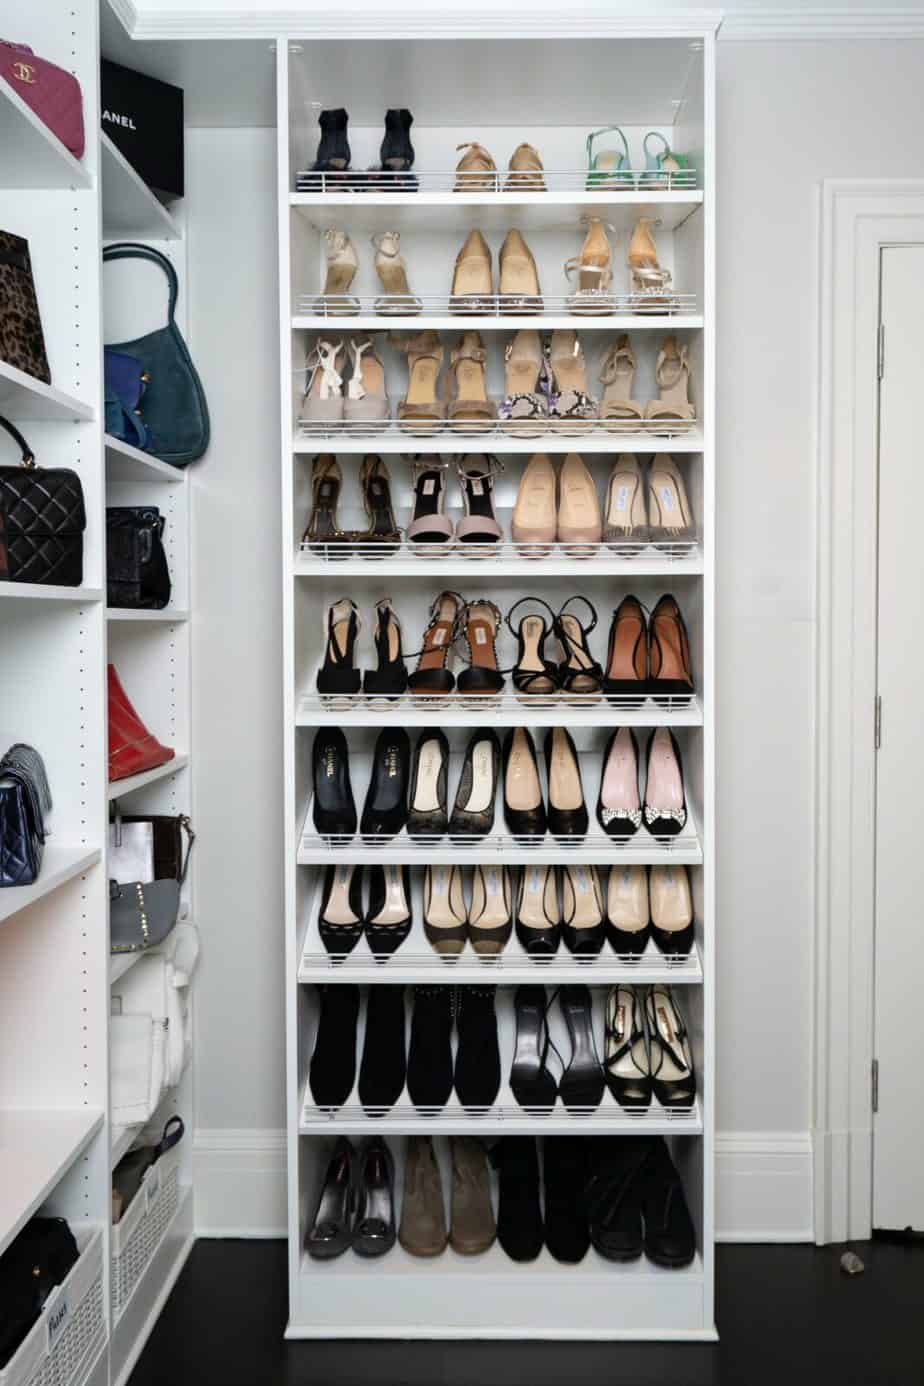 Top Shoe Storage And Organization Tips Suburbs 101